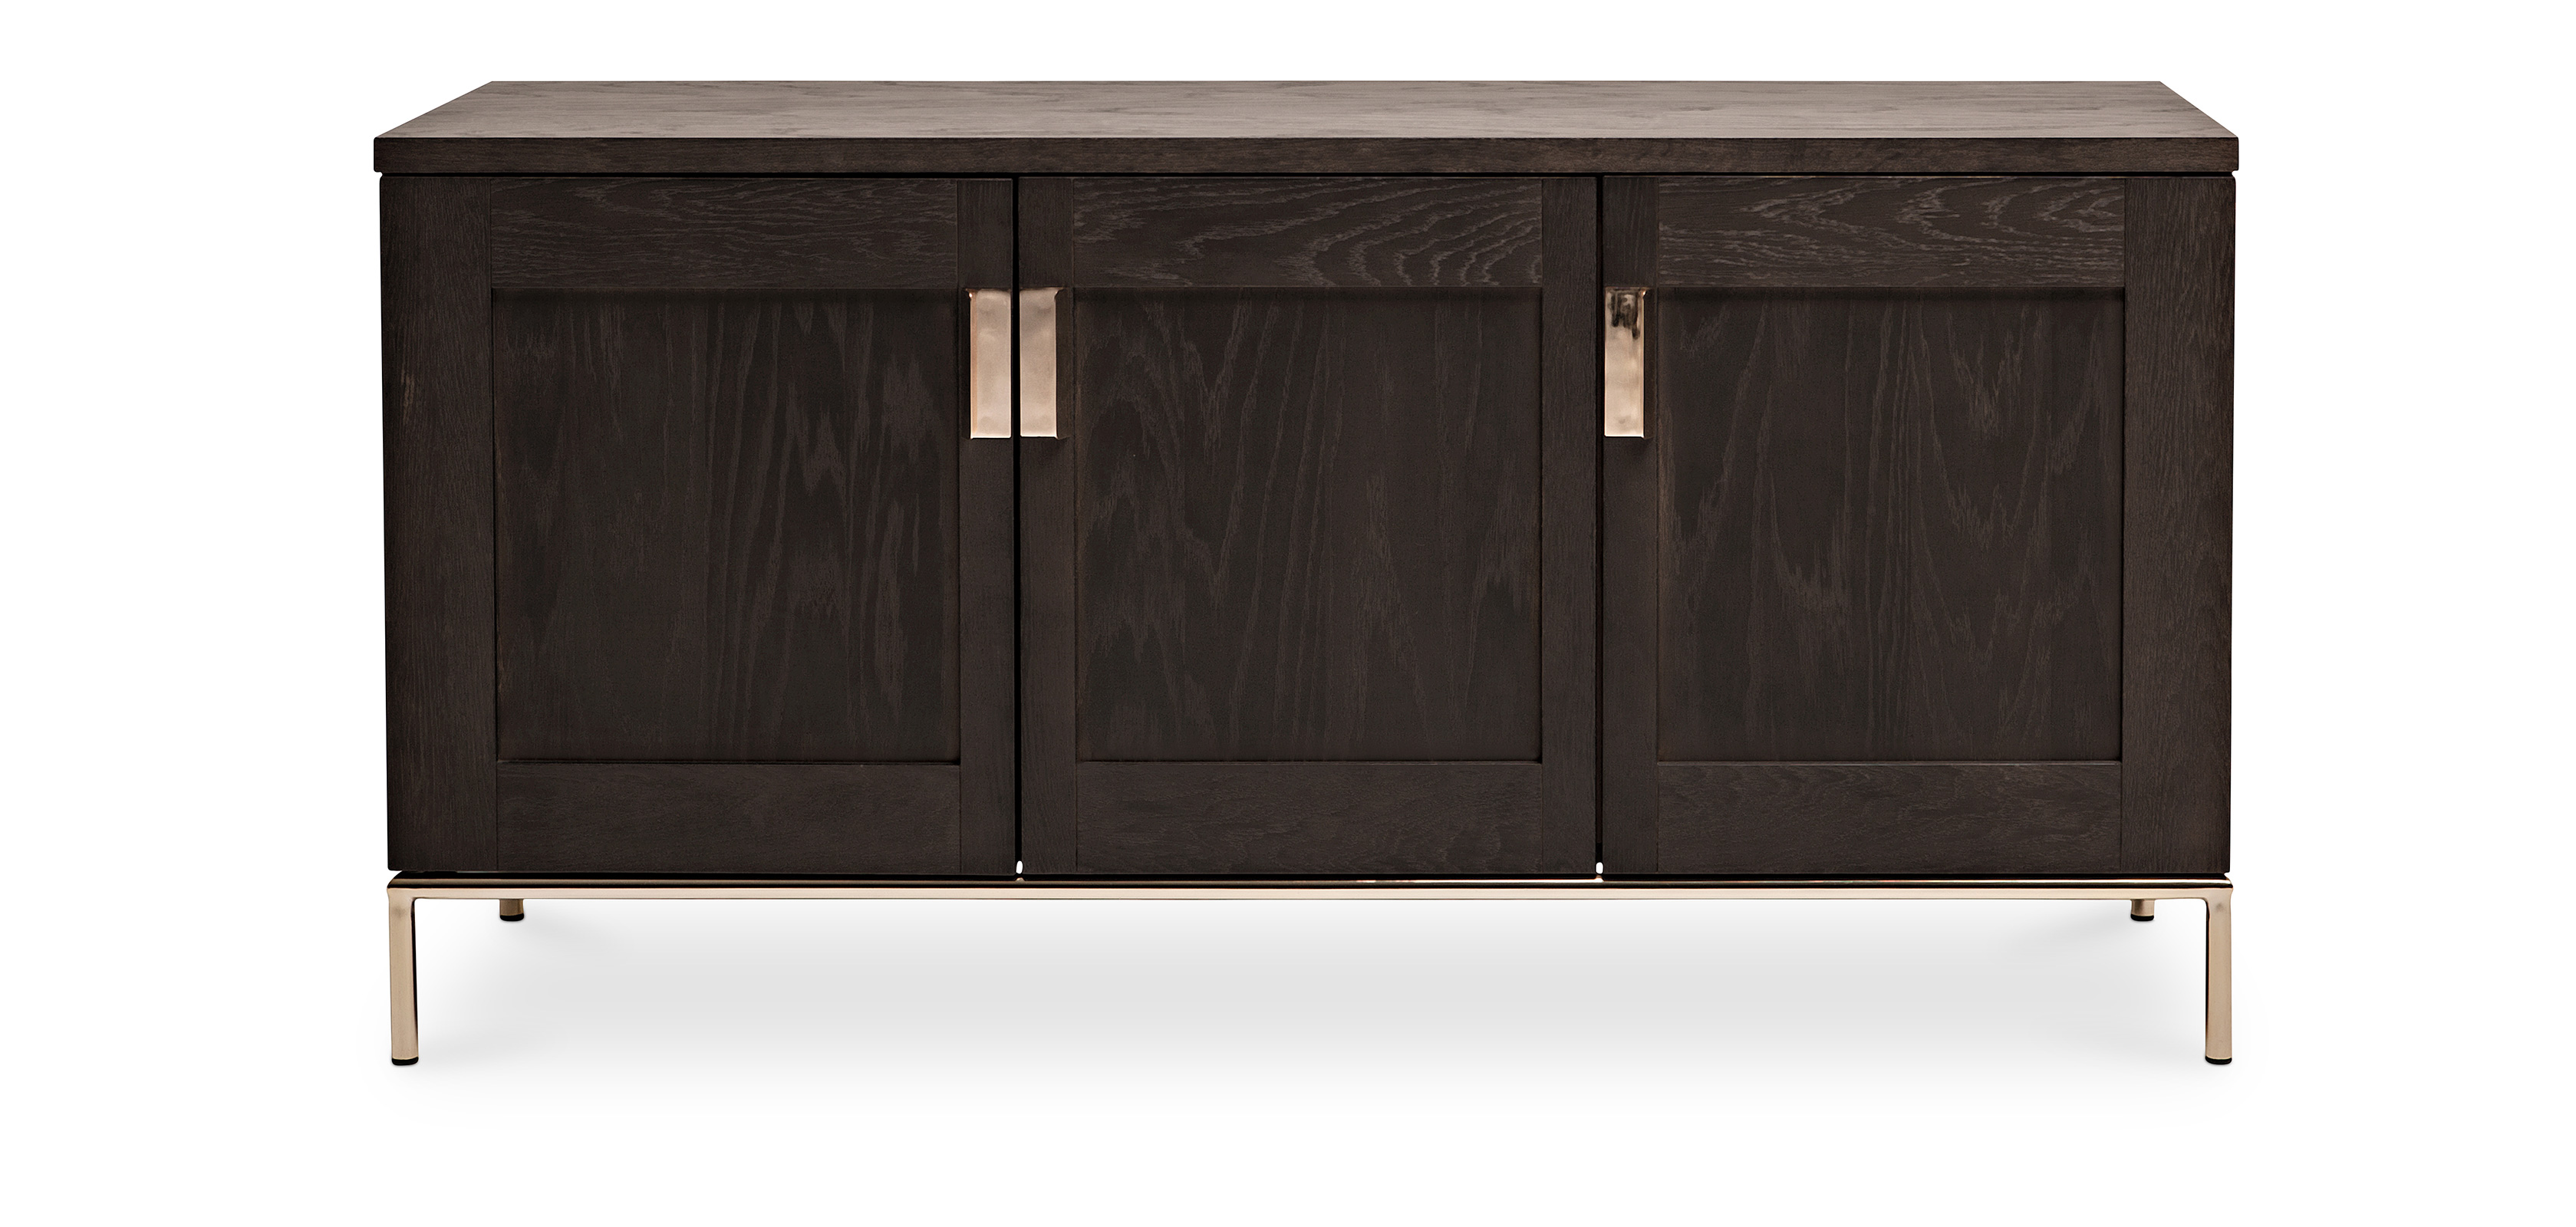 zuri sideboard aus holz dunkel. Black Bedroom Furniture Sets. Home Design Ideas